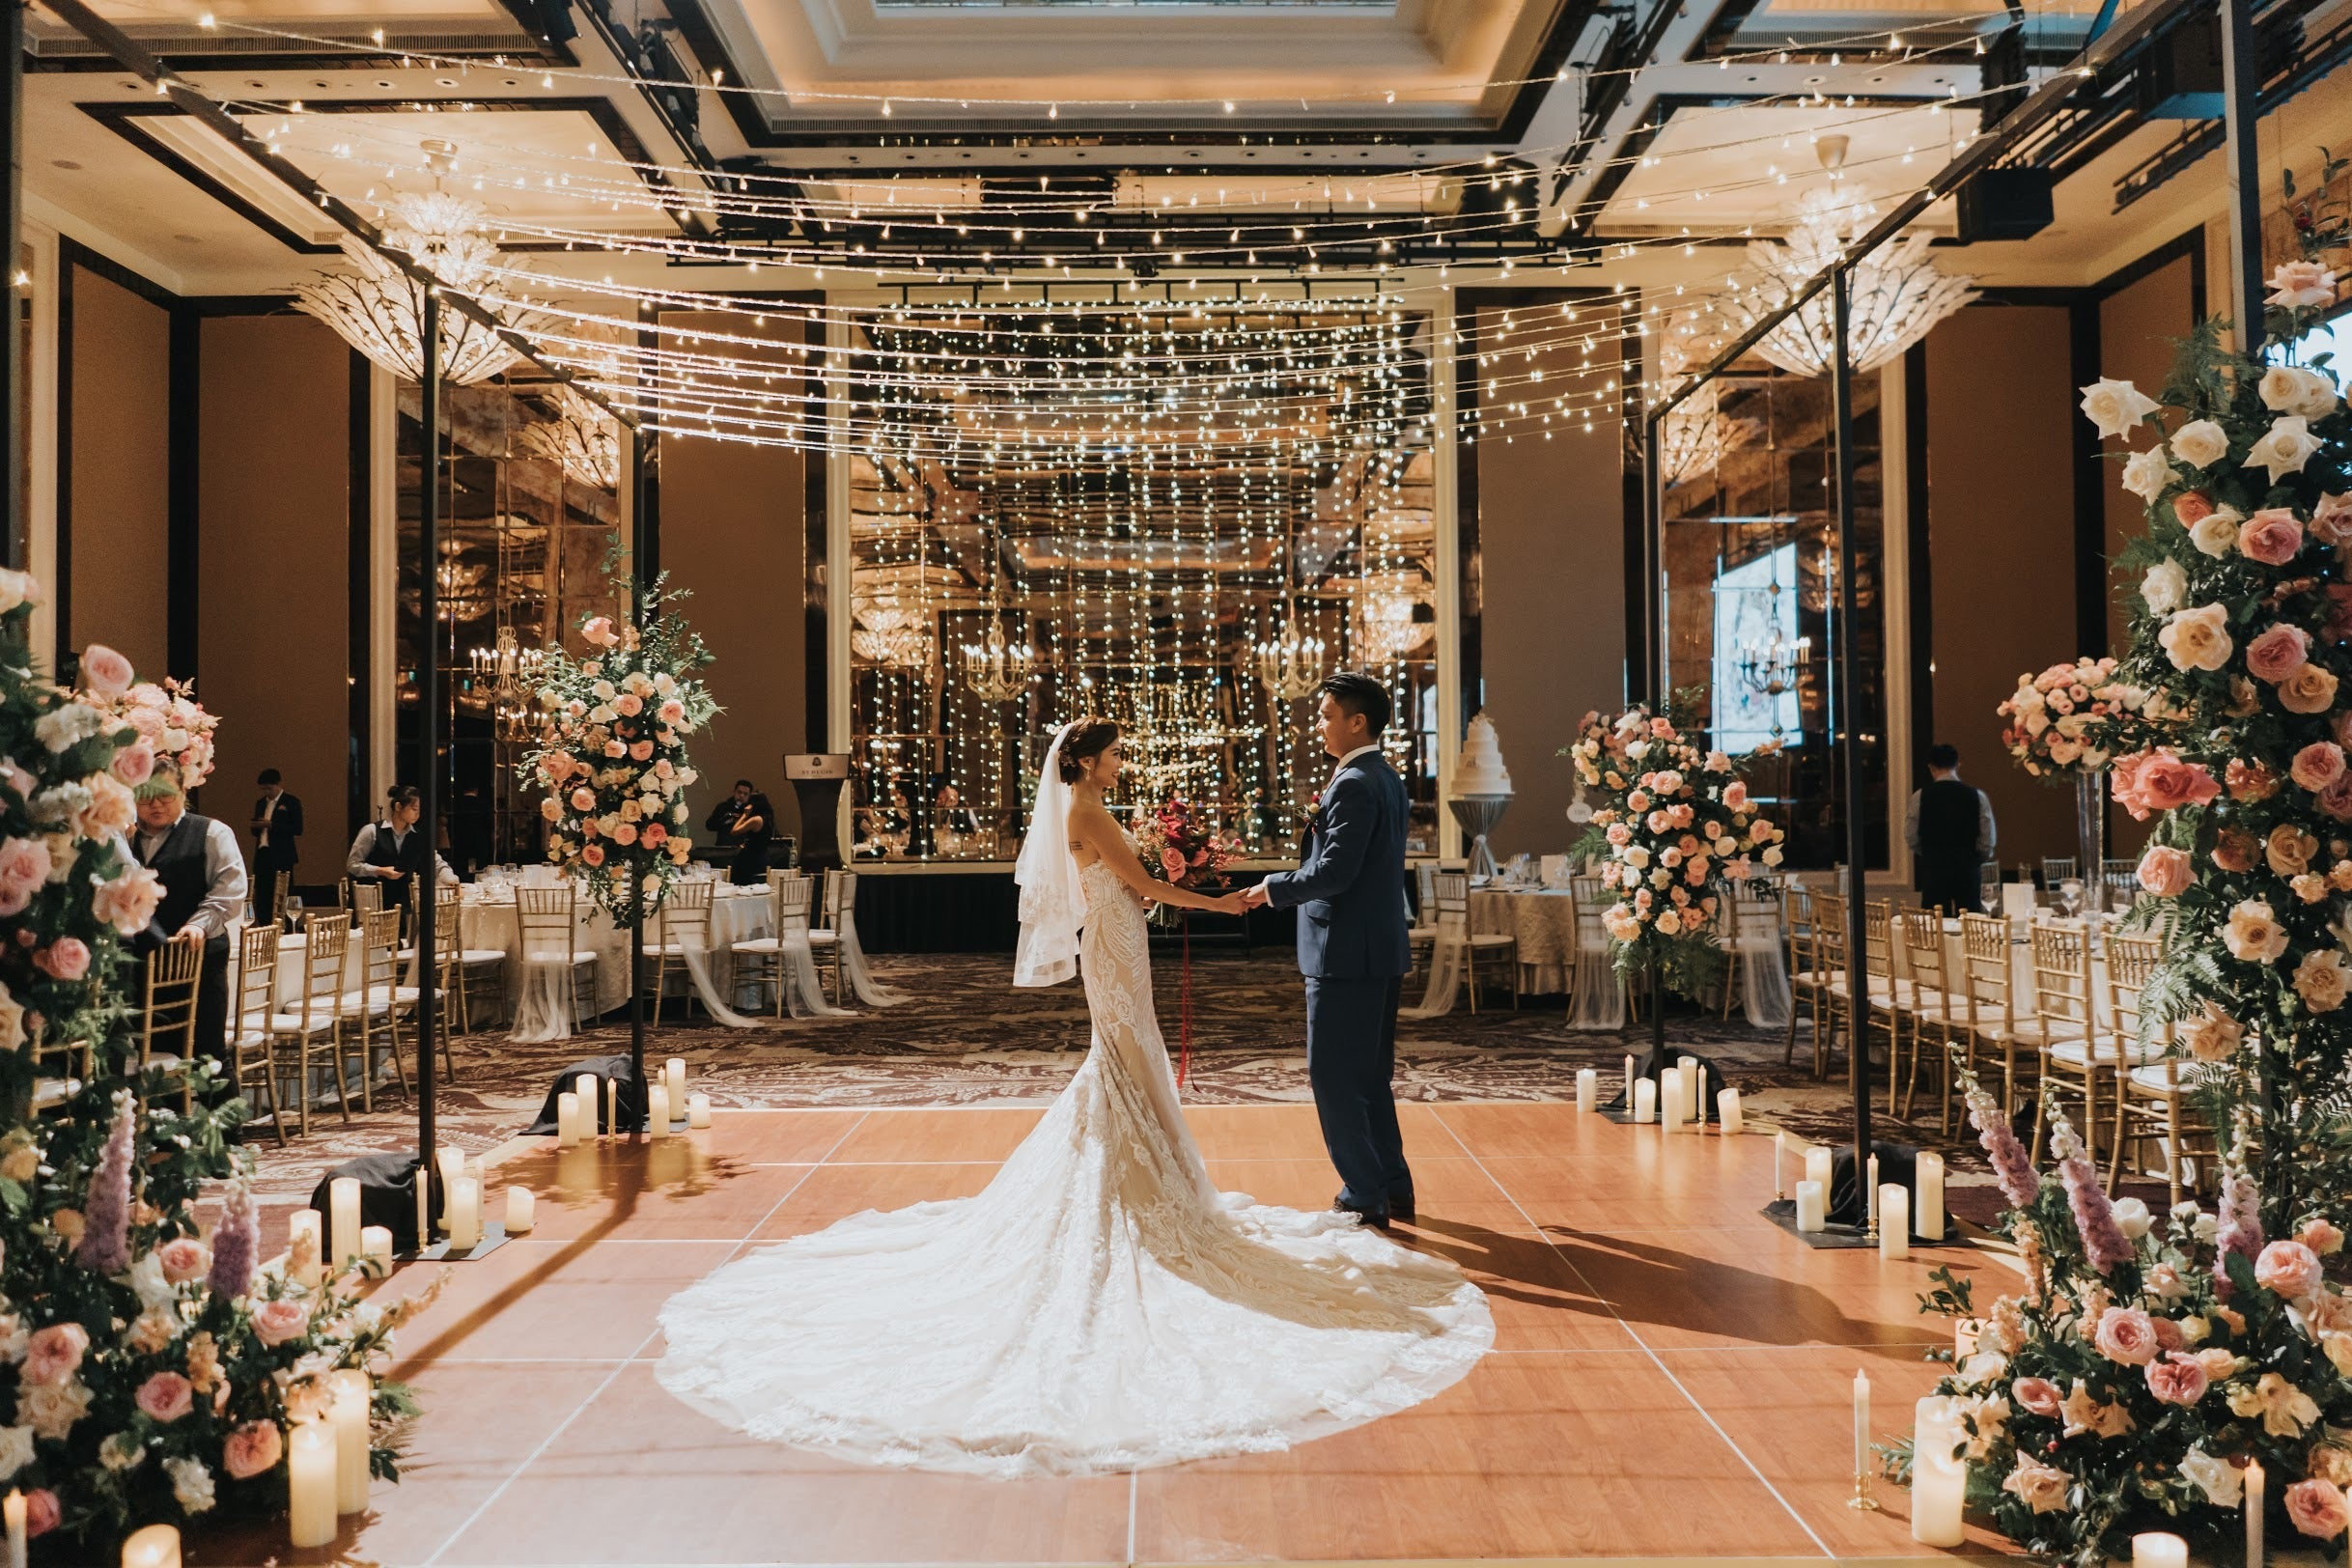 Unique dancefloor structure at St Regis ballroom Marriott hotel for couple's first dance at their dinner ceremony